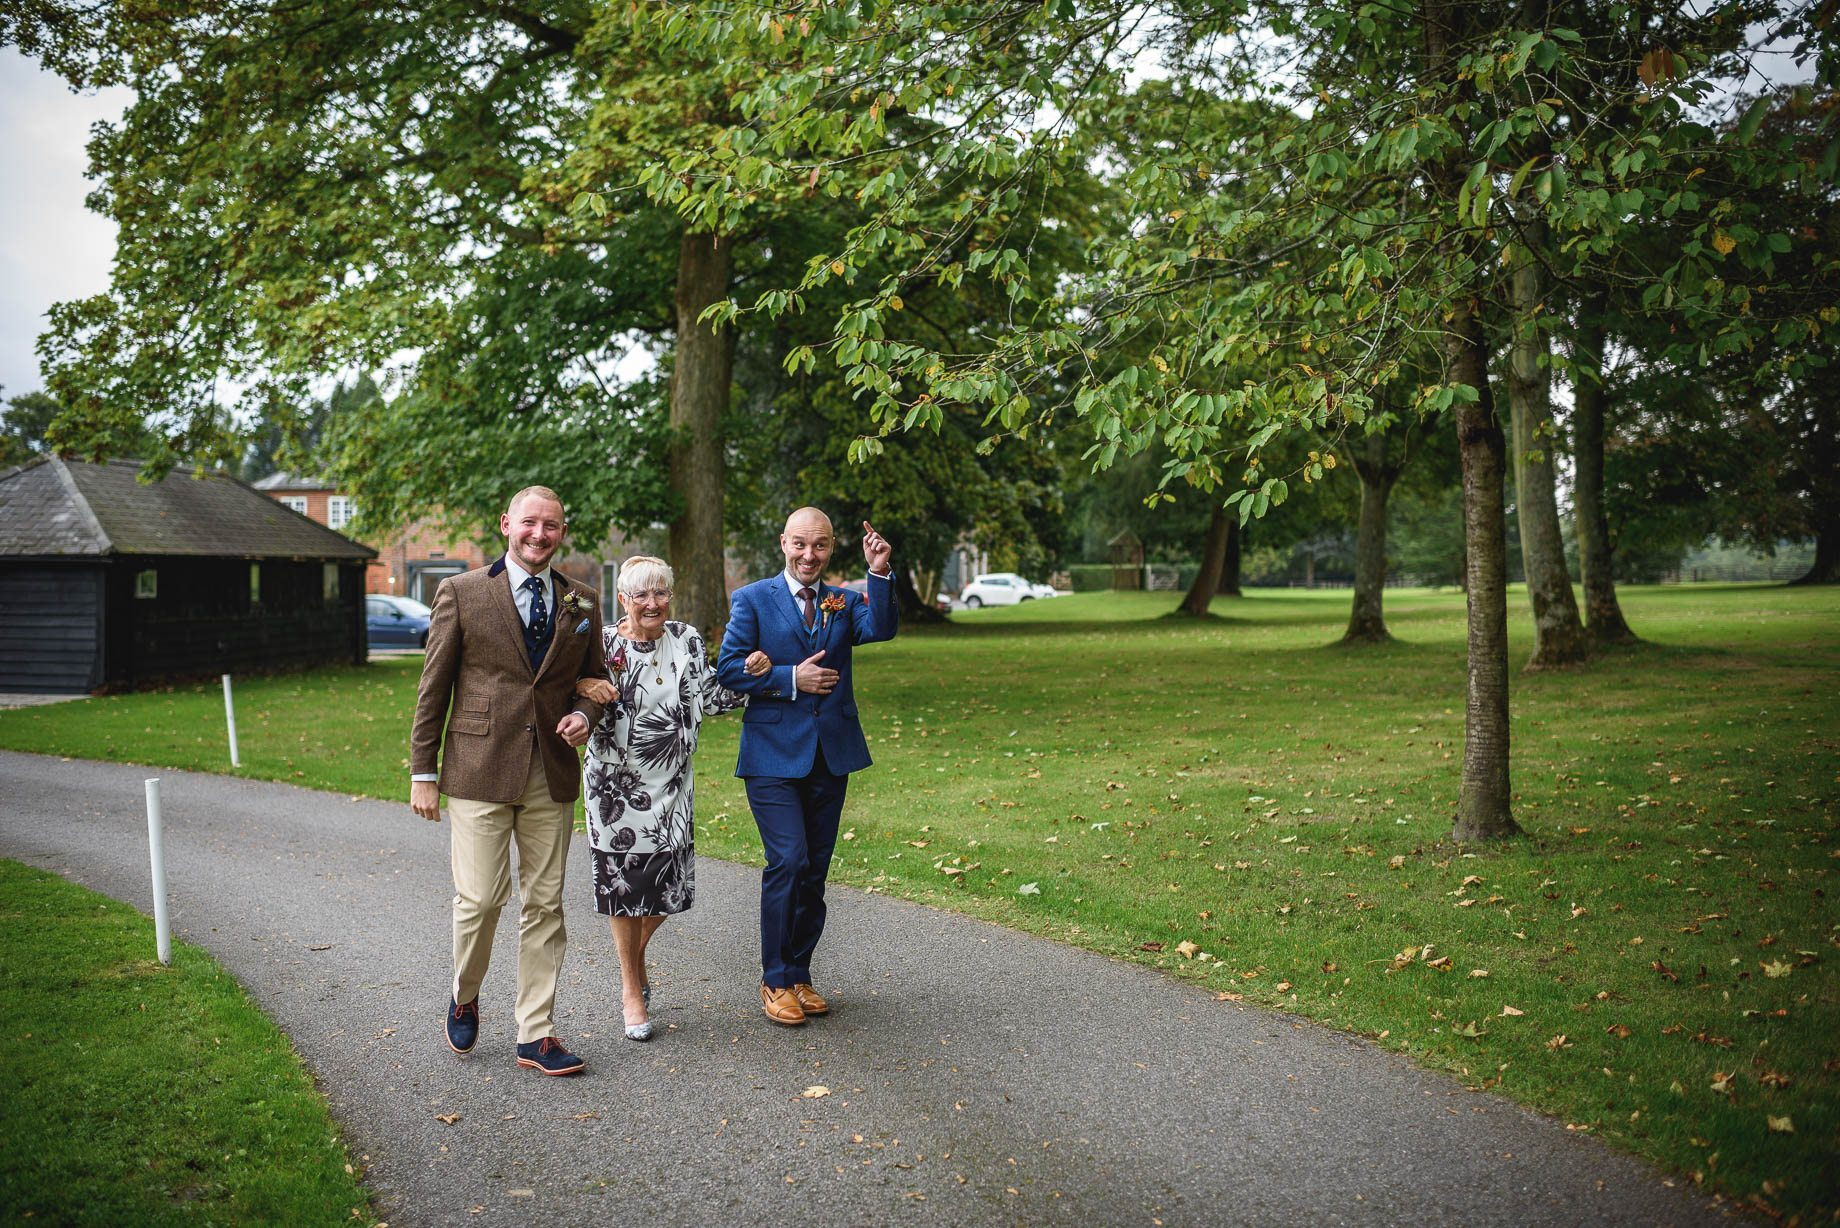 gay-wedding-photography-at-wasing-park-guy-collier-photography-ben-and-stephen-34-of-202